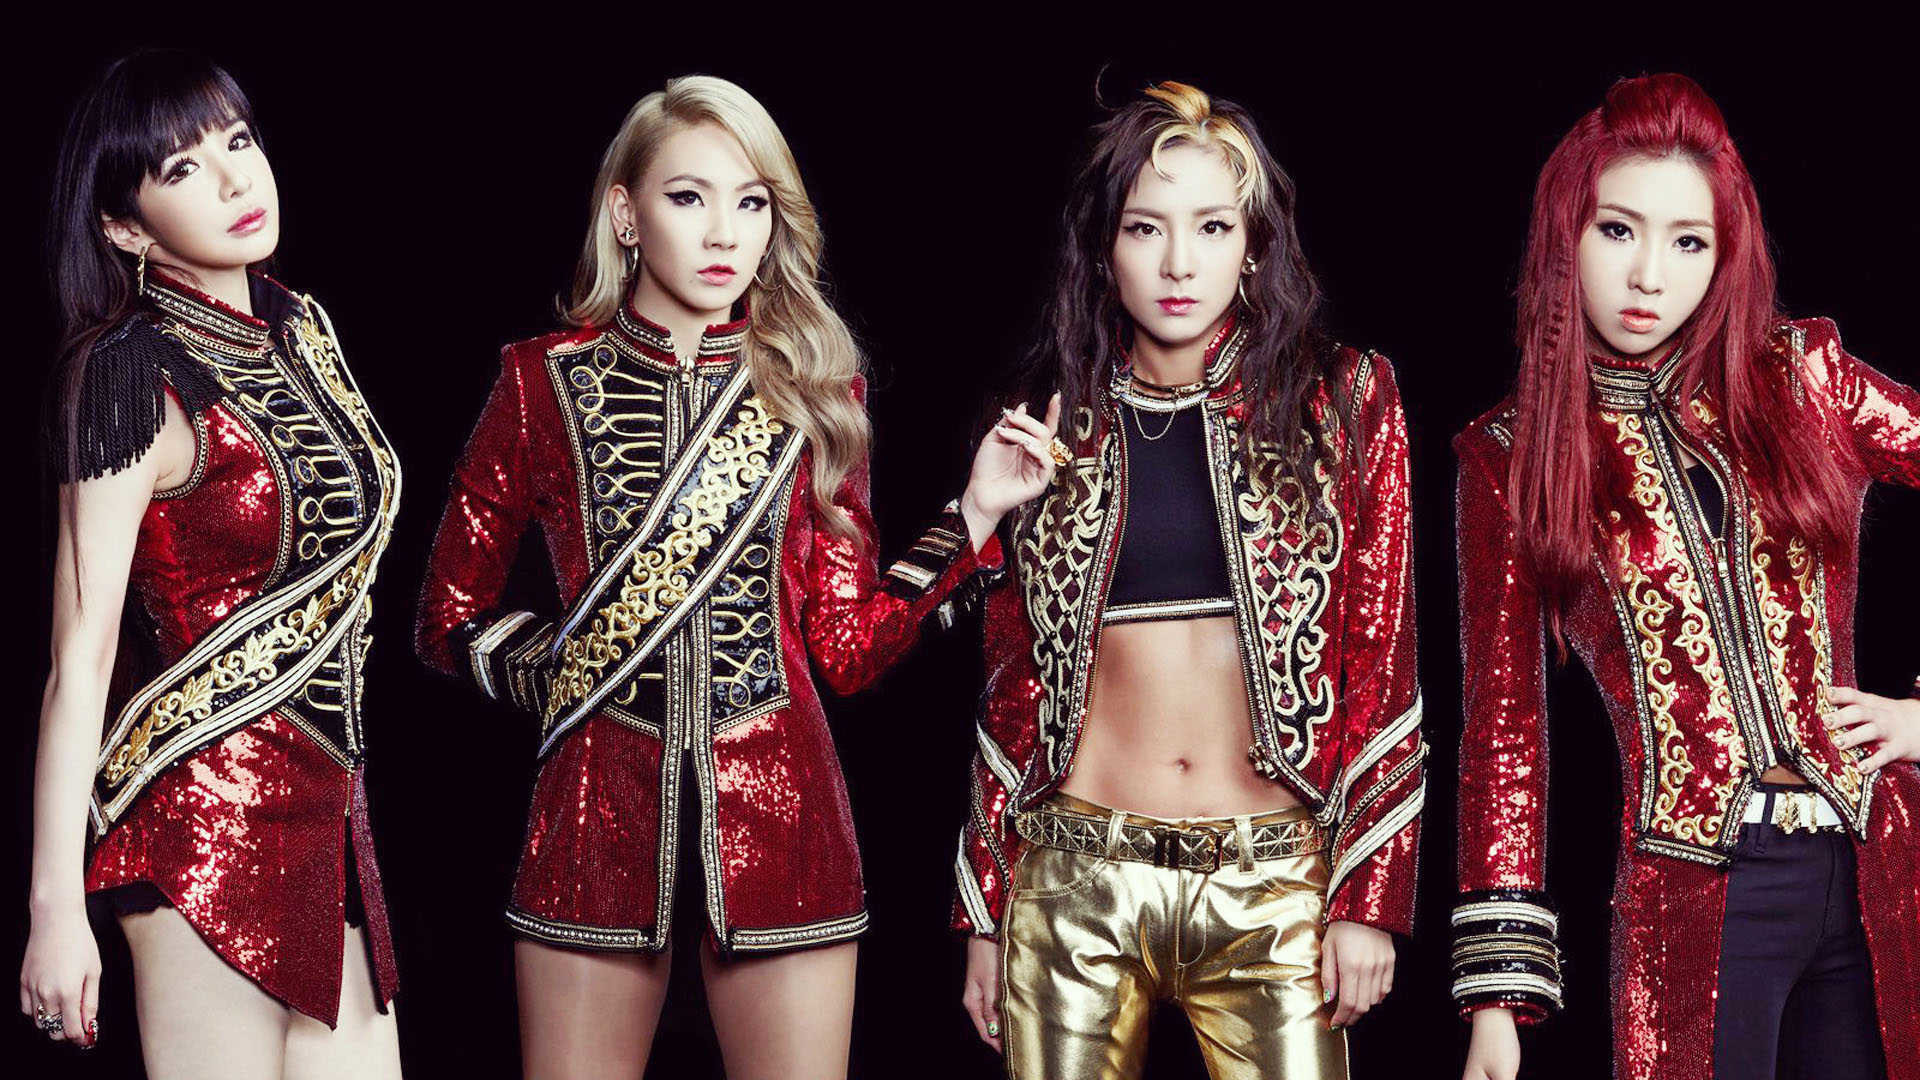 1920x1080 2ne1 Kpop Hd Wallpaper Widescreen Background Images 3167 Pictures